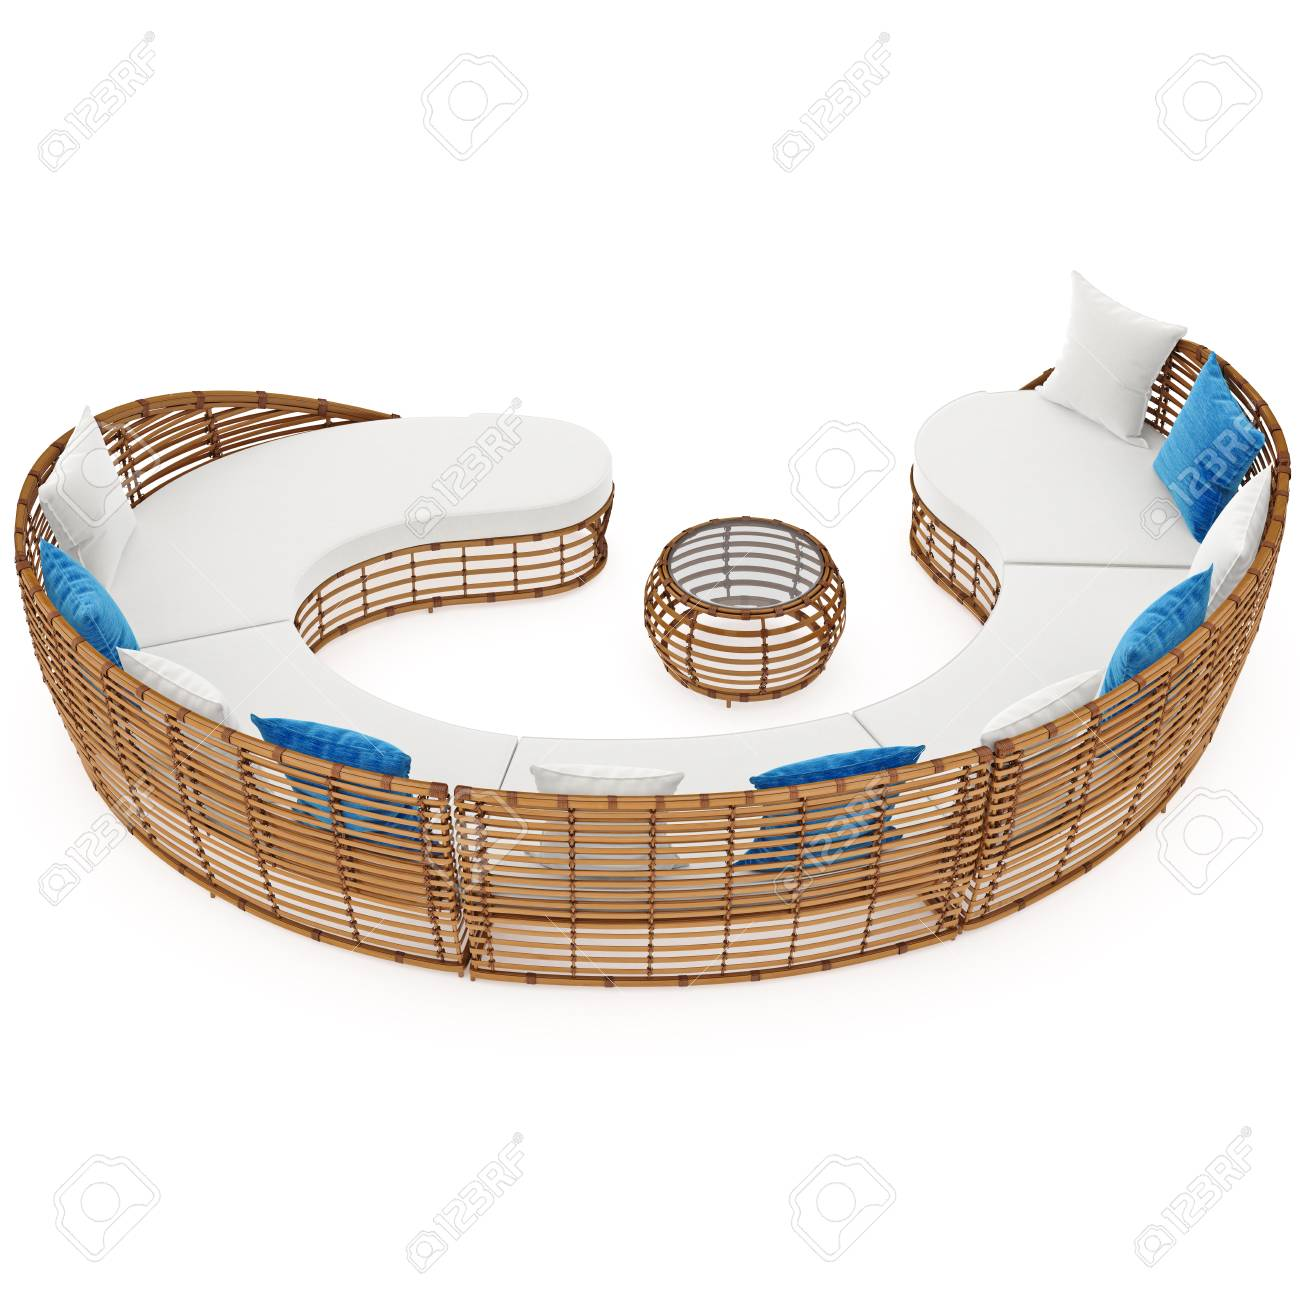 Wondrous Rattan Large Sofa Curved 3D Graphic Object On White Background Caraccident5 Cool Chair Designs And Ideas Caraccident5Info